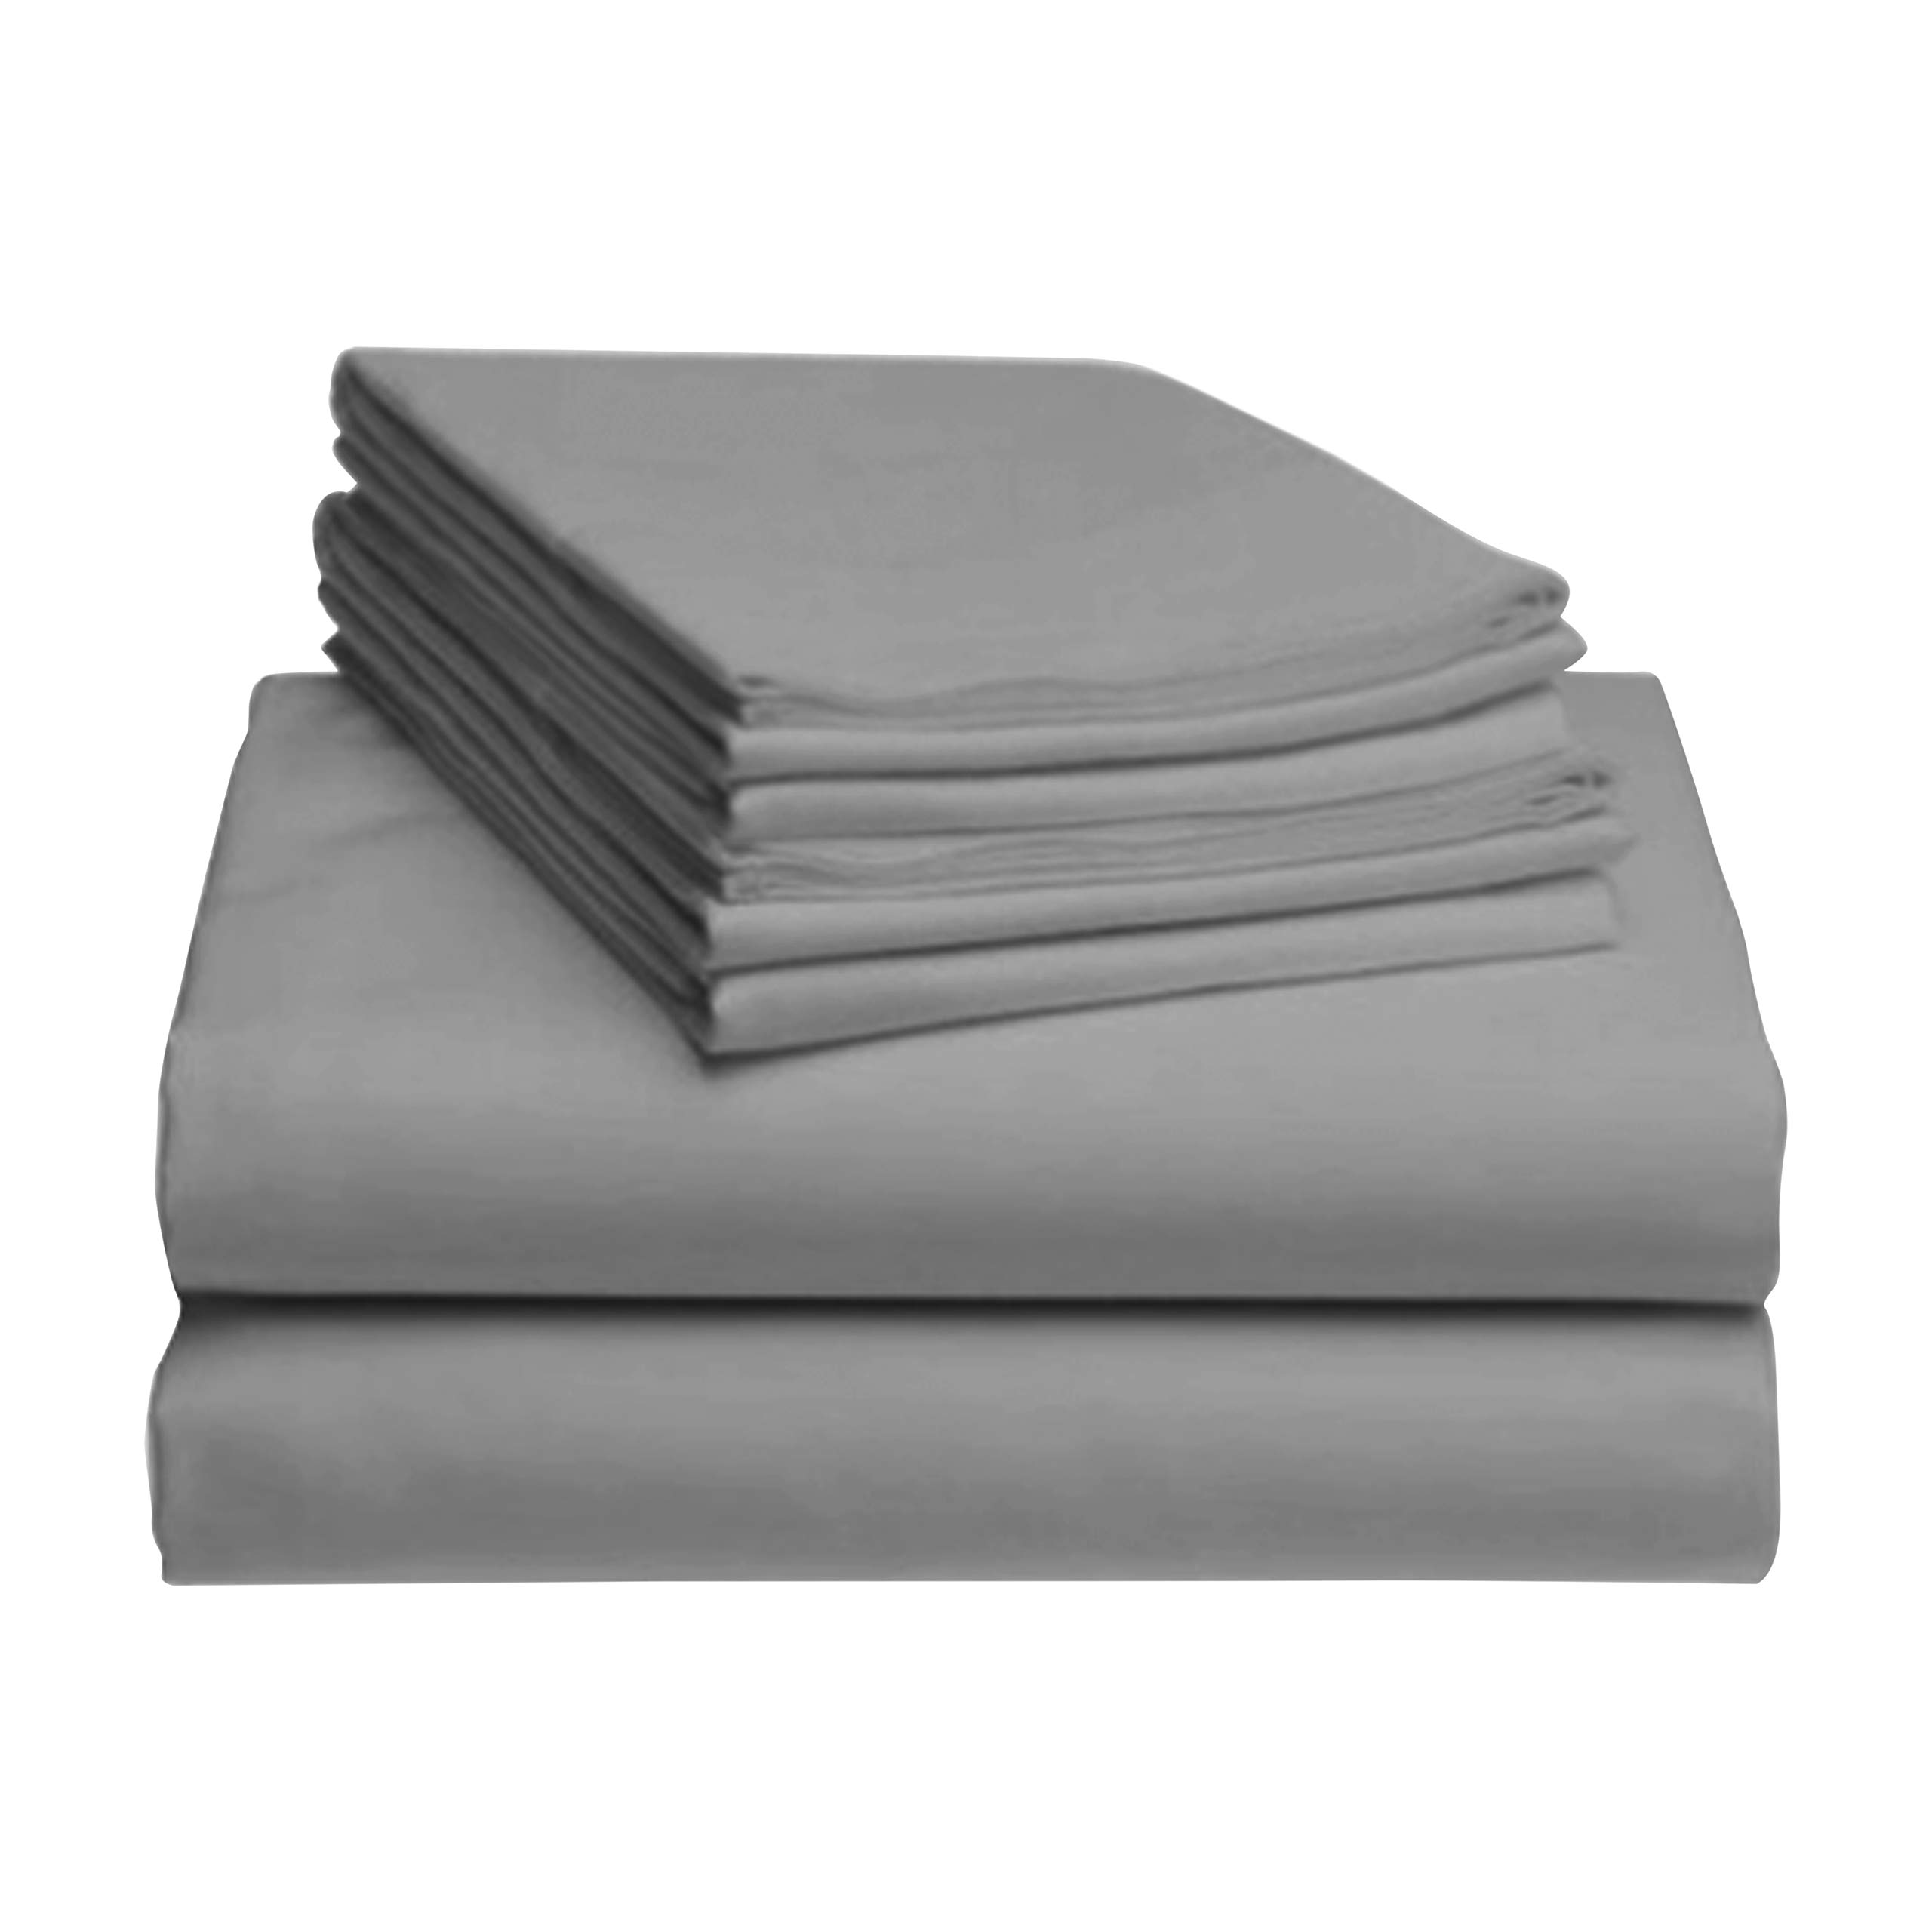 LuxClub 6 PC Sheet Set Bamboo Sheets Deep Pockets 18'' Eco Friendly Wrinkle Free Sheets Hypoallergenic Anti-Bacteria Machine Washable Hotel Bedding Silky Soft - Light Grey King